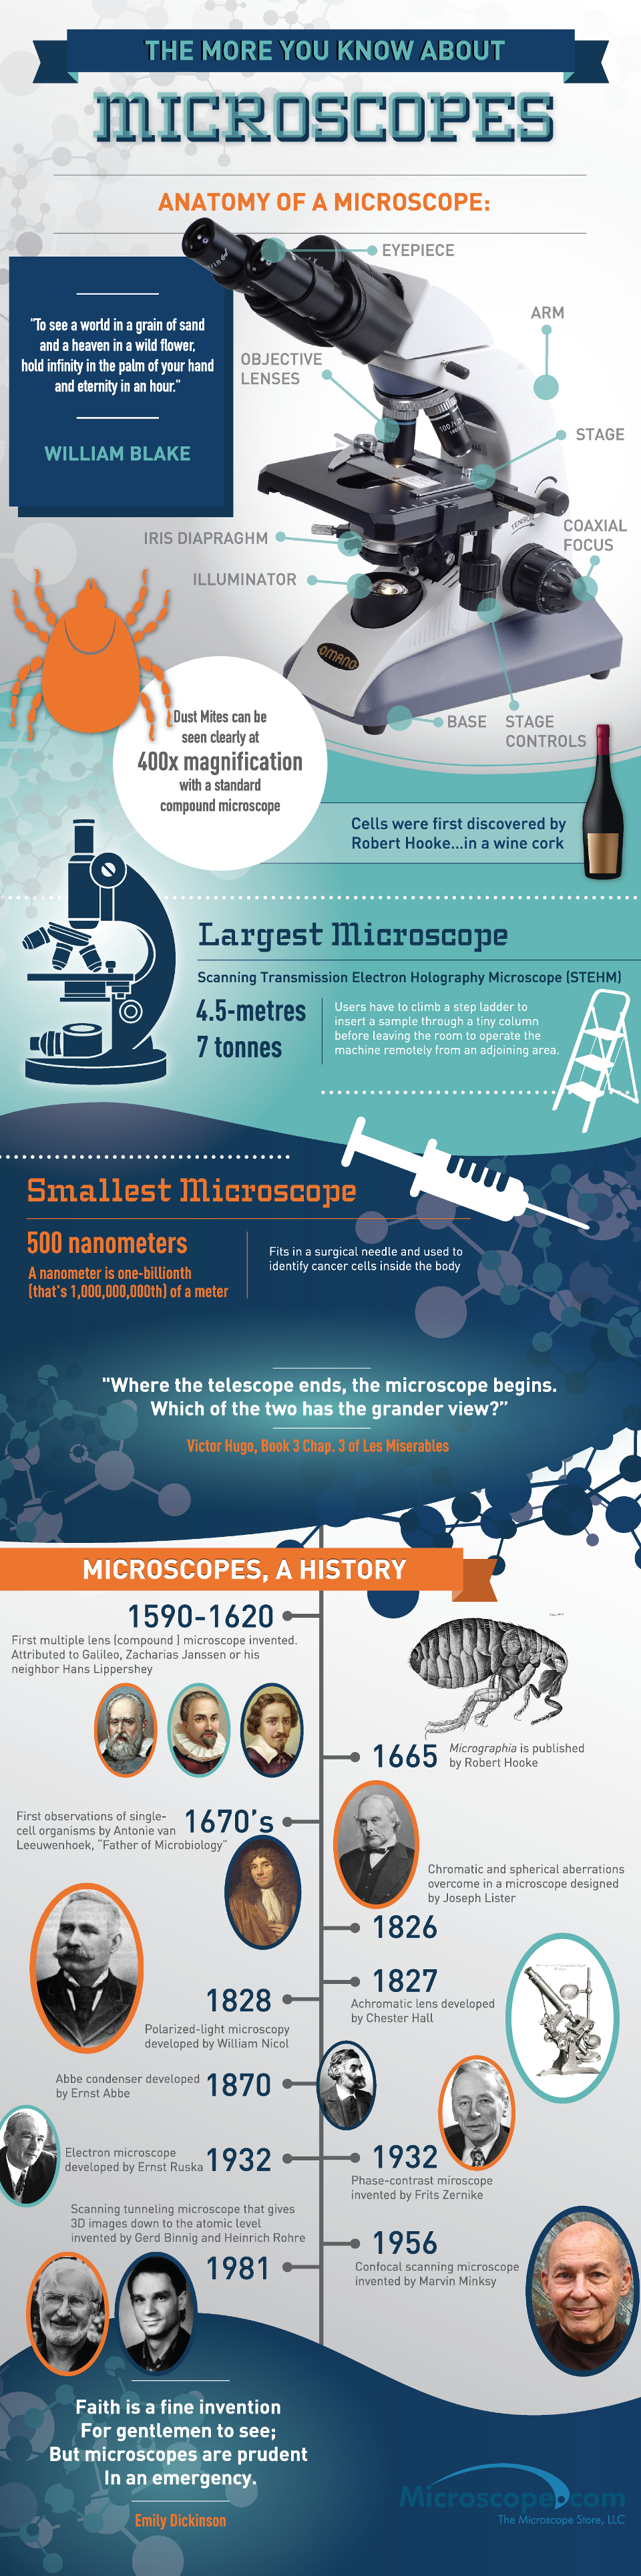 Anatomy Of The Microscope